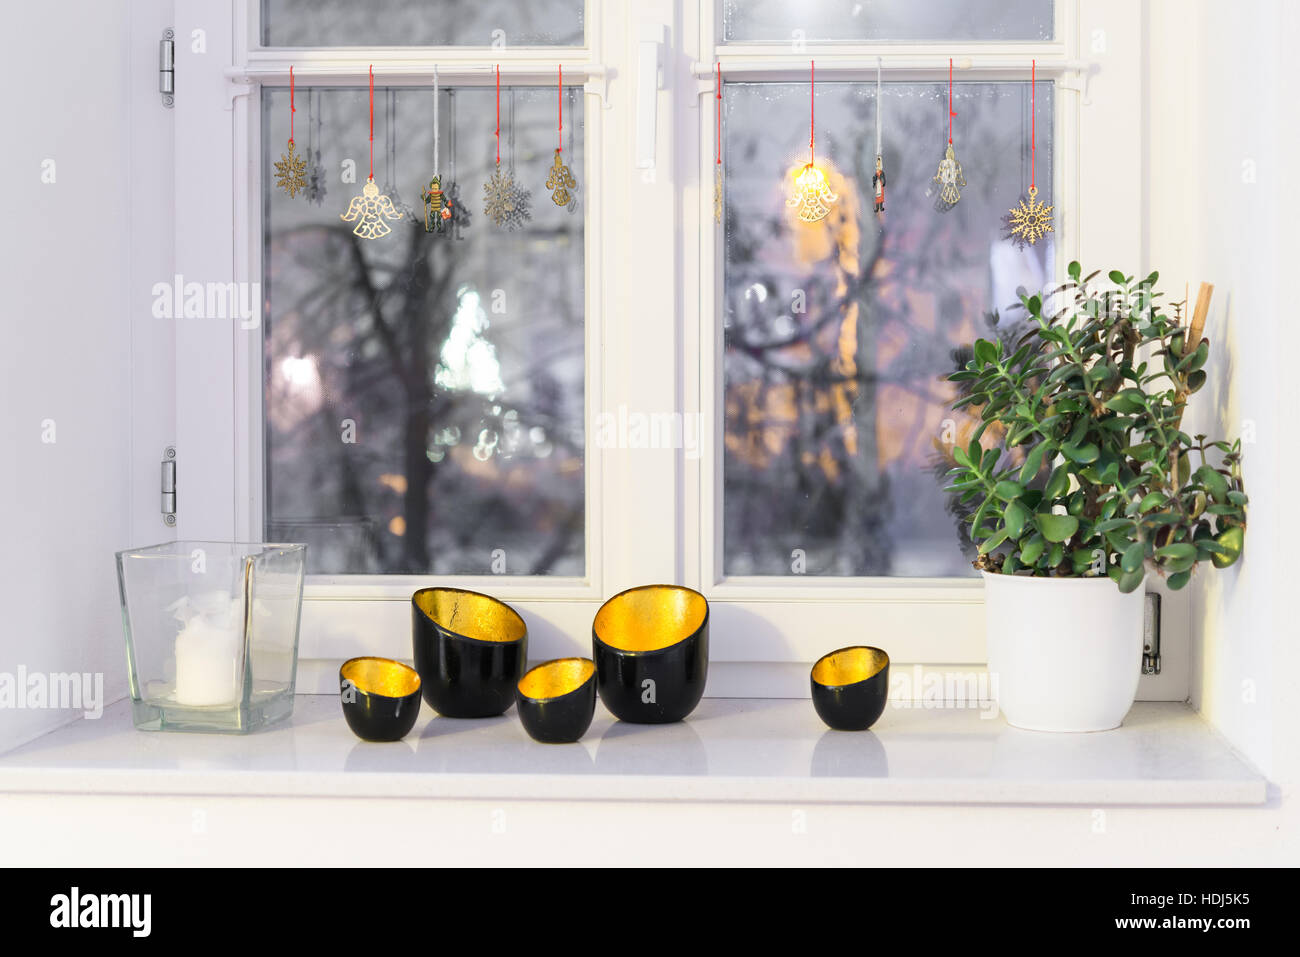 Candles on a window ledge with christmas lightning - Stock Image